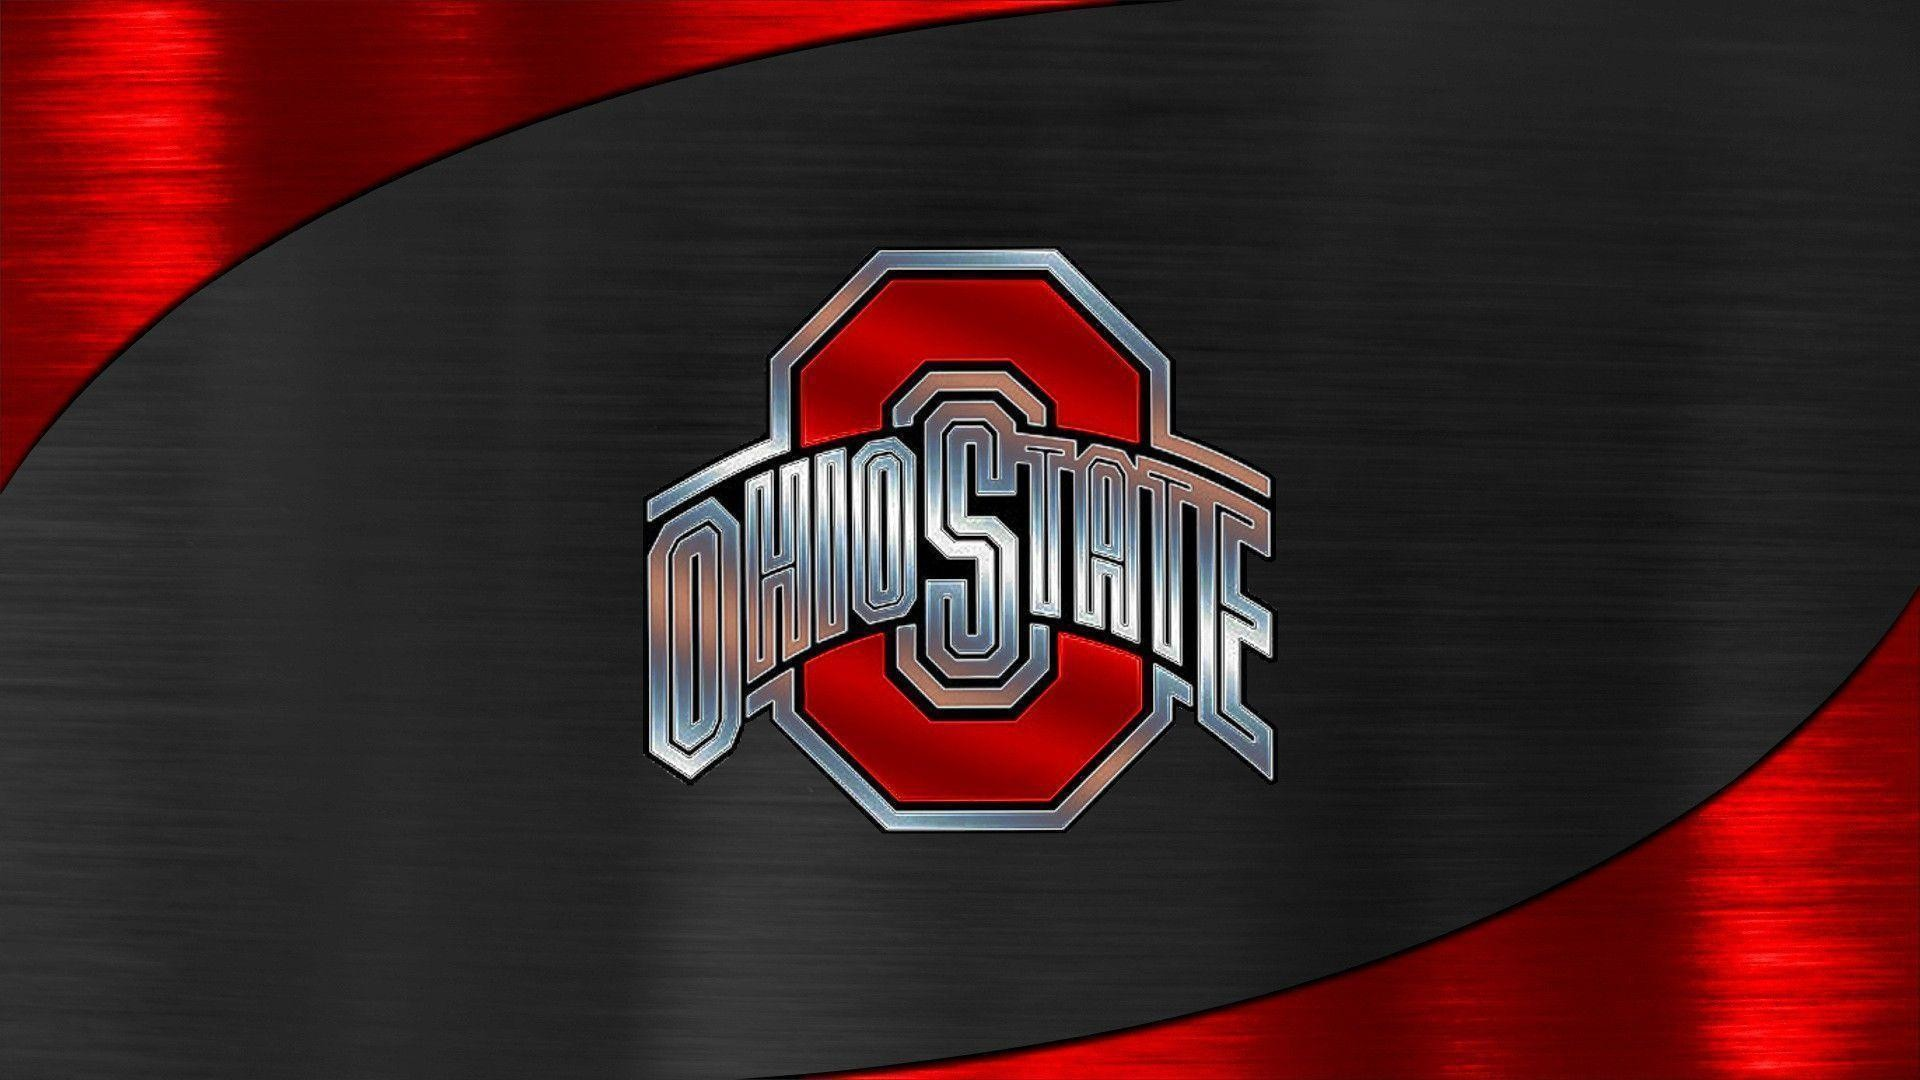 1920x1080 OSU Wallpaper 445 - Ohio State Football Wallpaper (33526935) - Fanpop